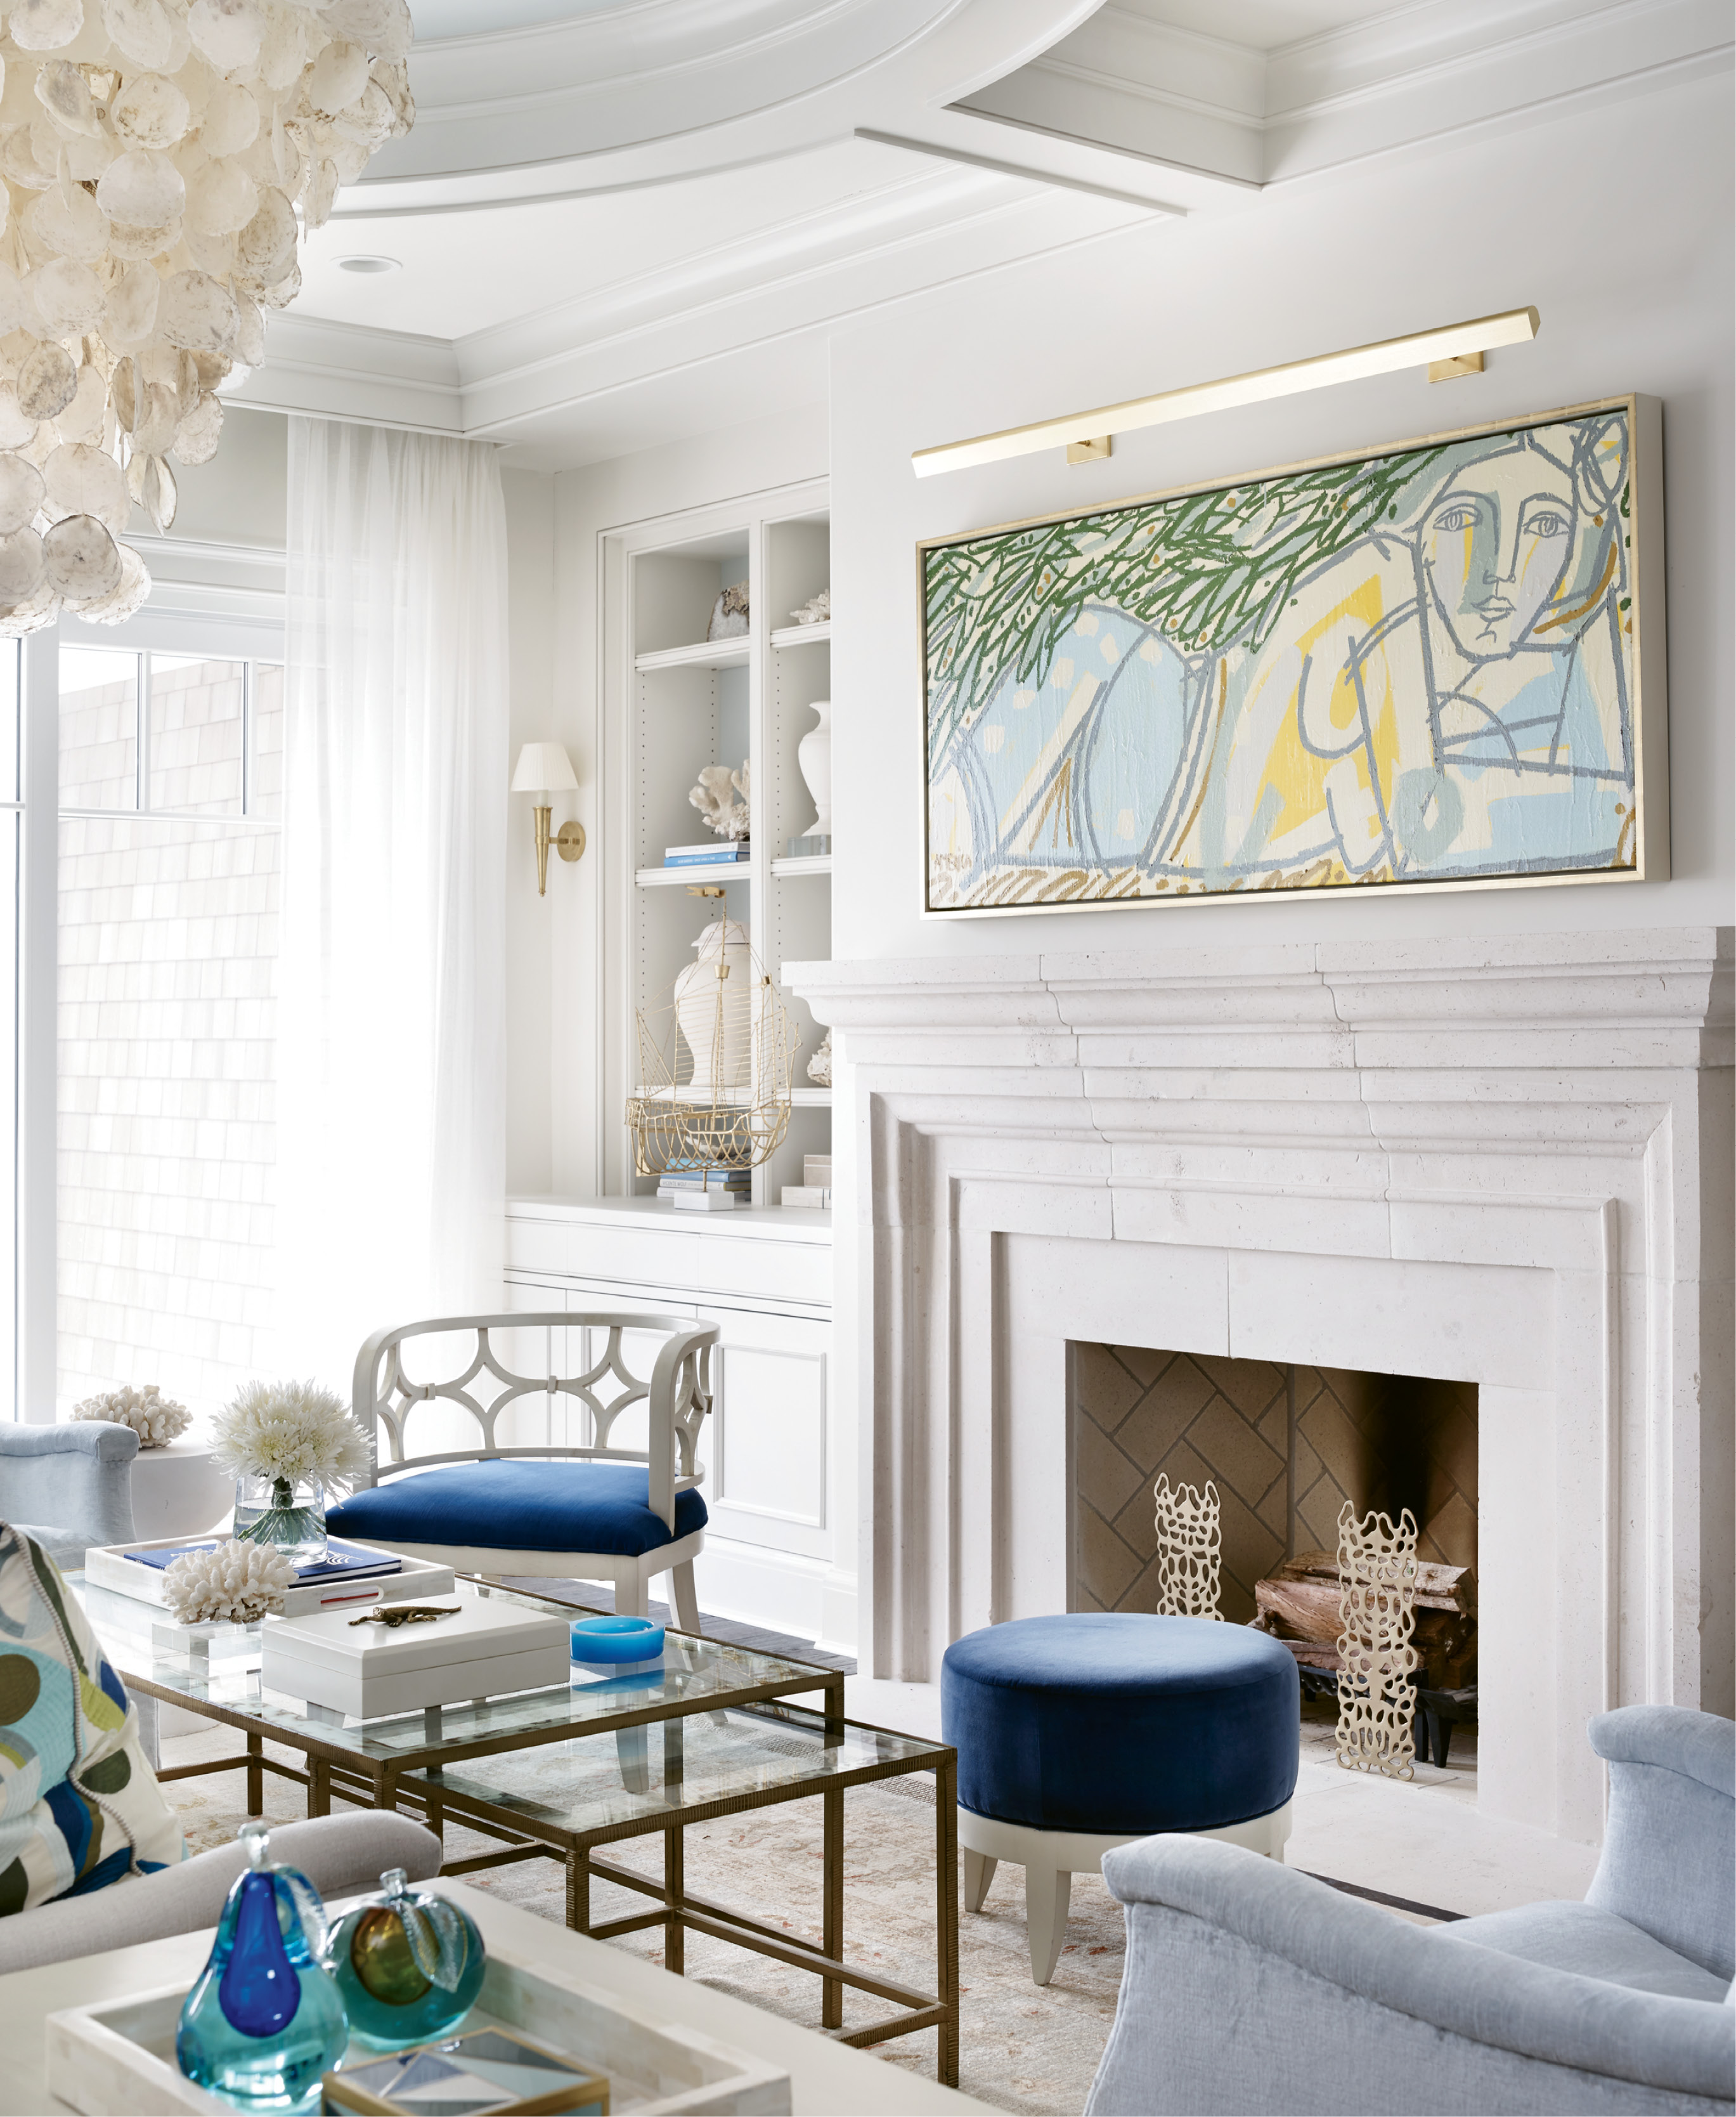 A painting by Colombian-American artist America Martin presides over the hearth.